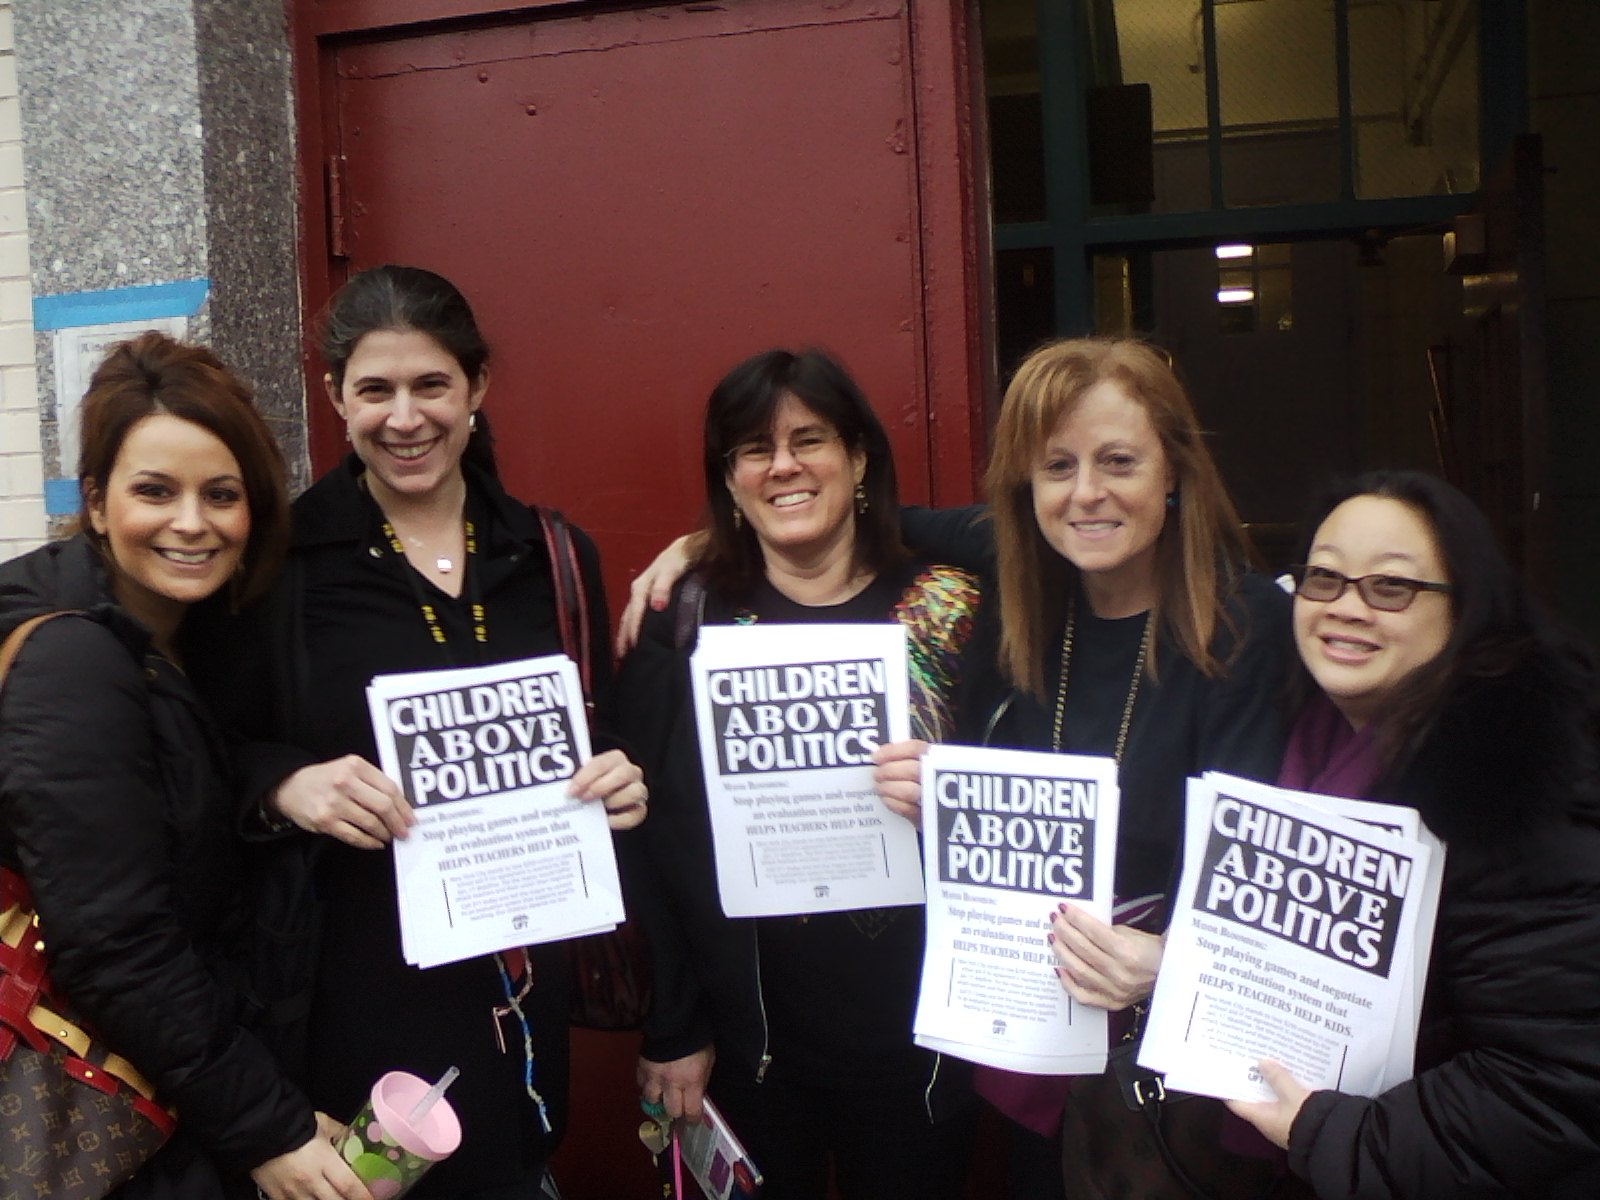 Teachers Lisa Schender, Andrea Cassidy, Terri Ackerman, Chapter Leader Susan Singer, and Jen Leung of PS 162, Queens.